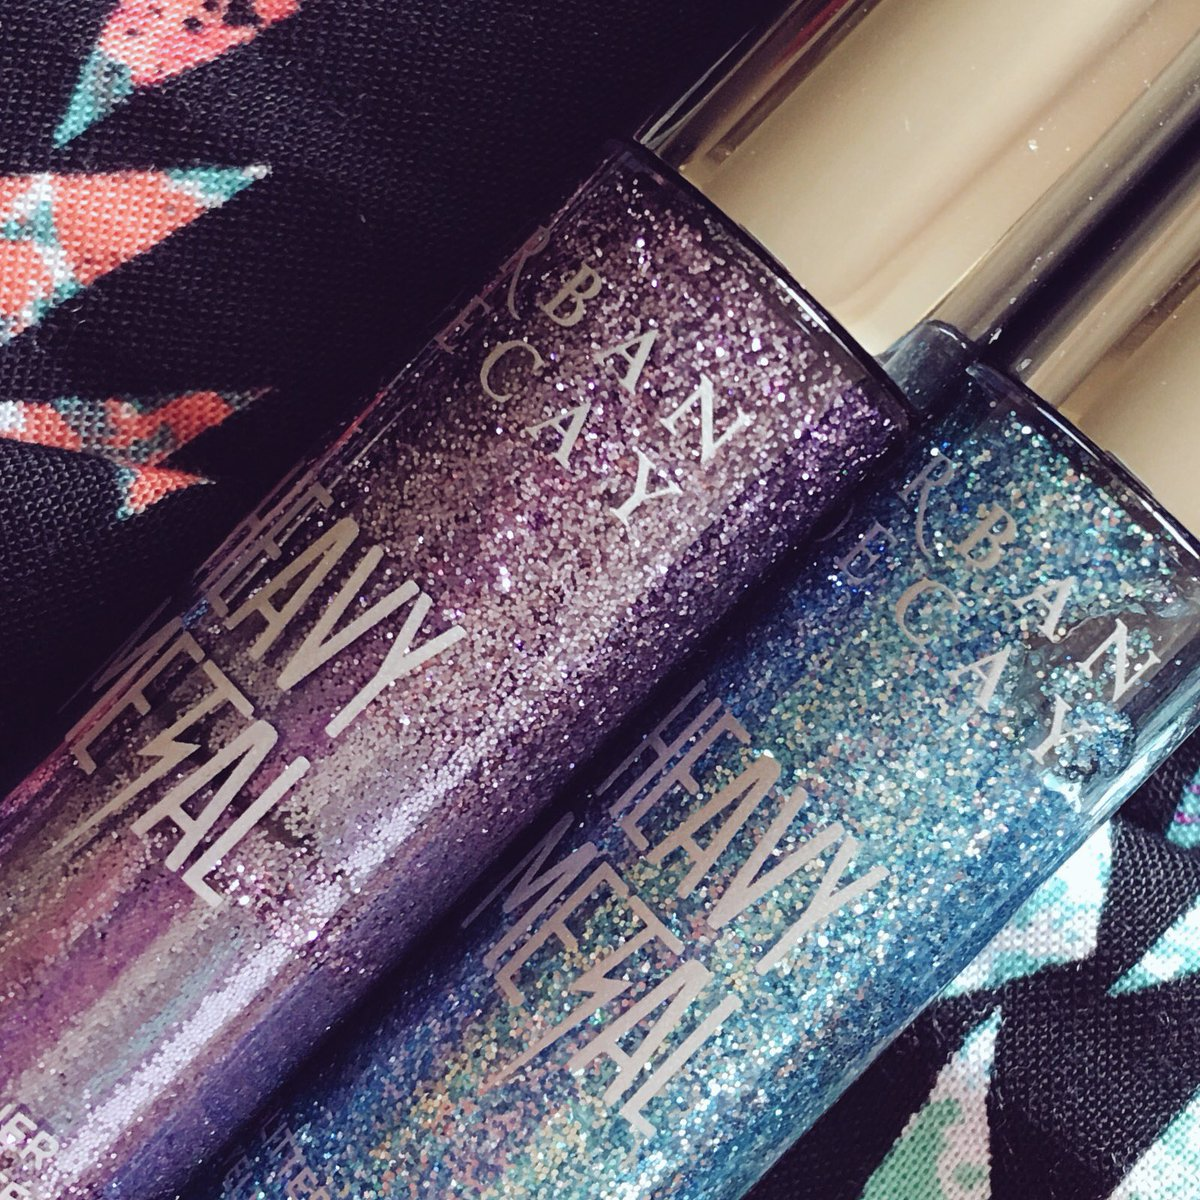 """Everyone has an obsession.. Mine just so happens to be @UrbanDecay's """" Heavy Metal """" glitter eyeliner. #ShineBright✨ https://t.co/DiOom9S3oL"""